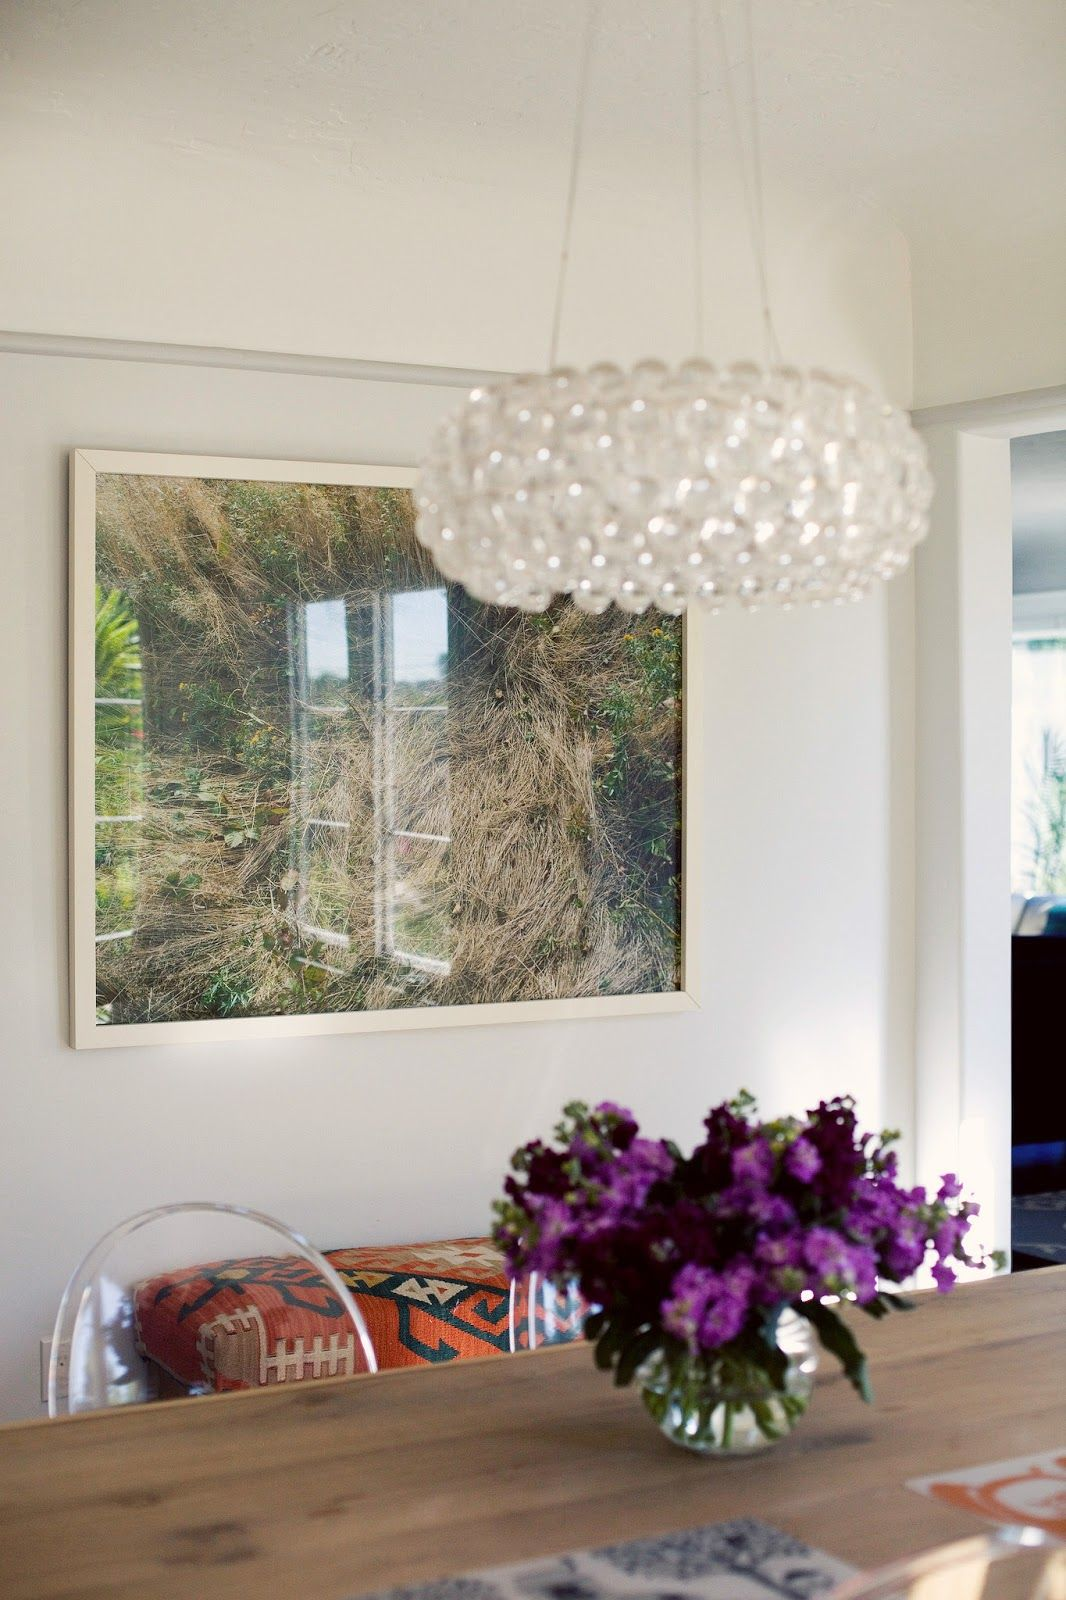 Deer bed photograph: Katherine Wolkoff, and chandelier, via A CUP OF JO: Los Angeles home tour